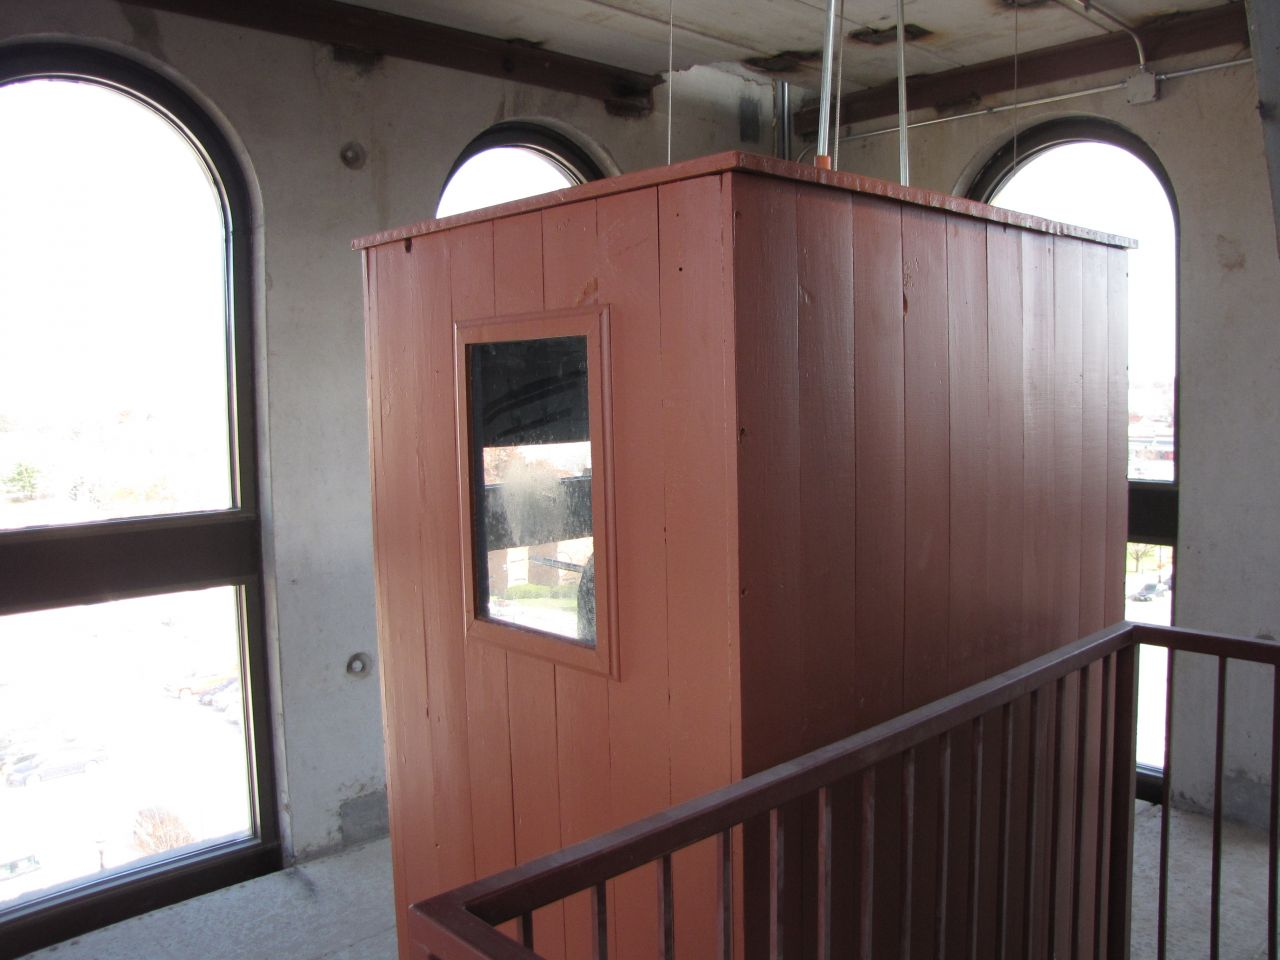 Restored housing for the mechanicals for the clocktower bell